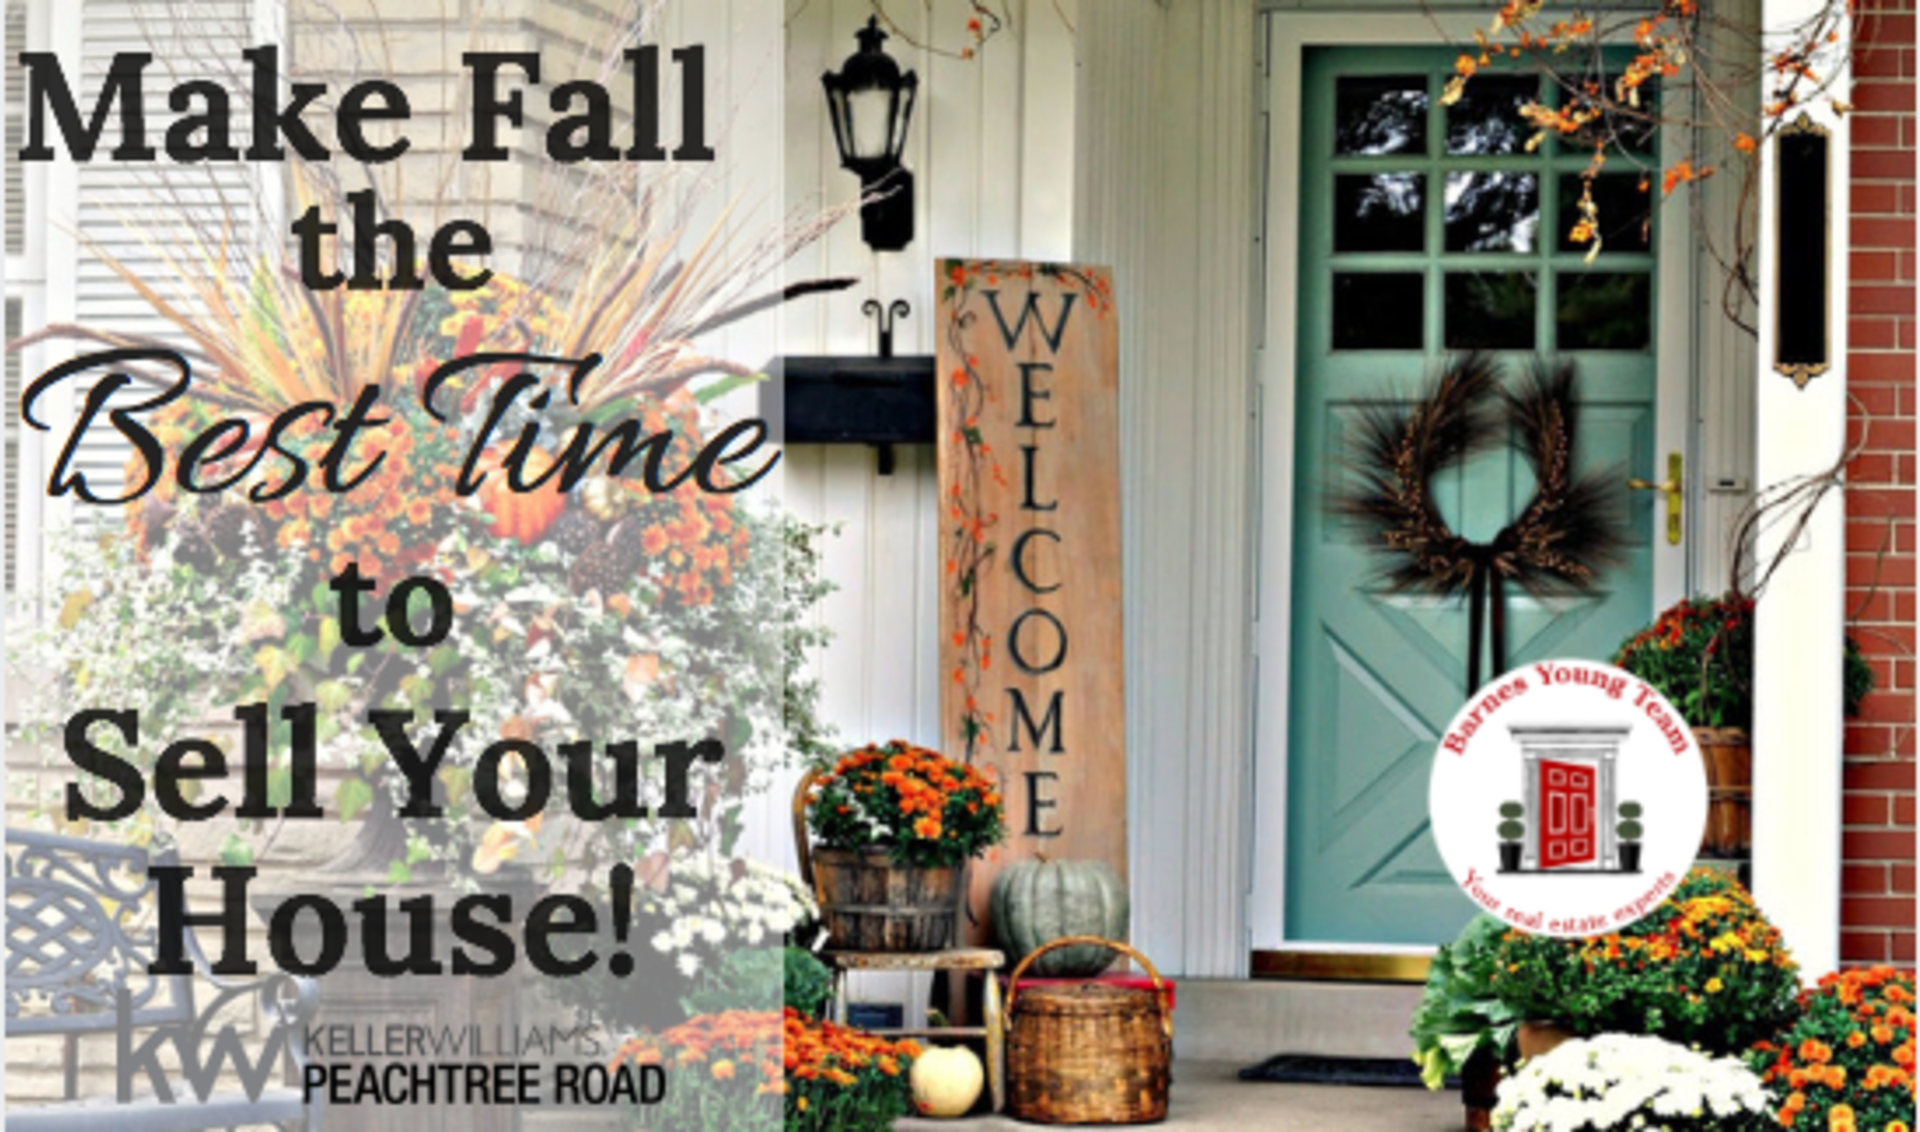 Make Fall the Best Time to Sell Your House!